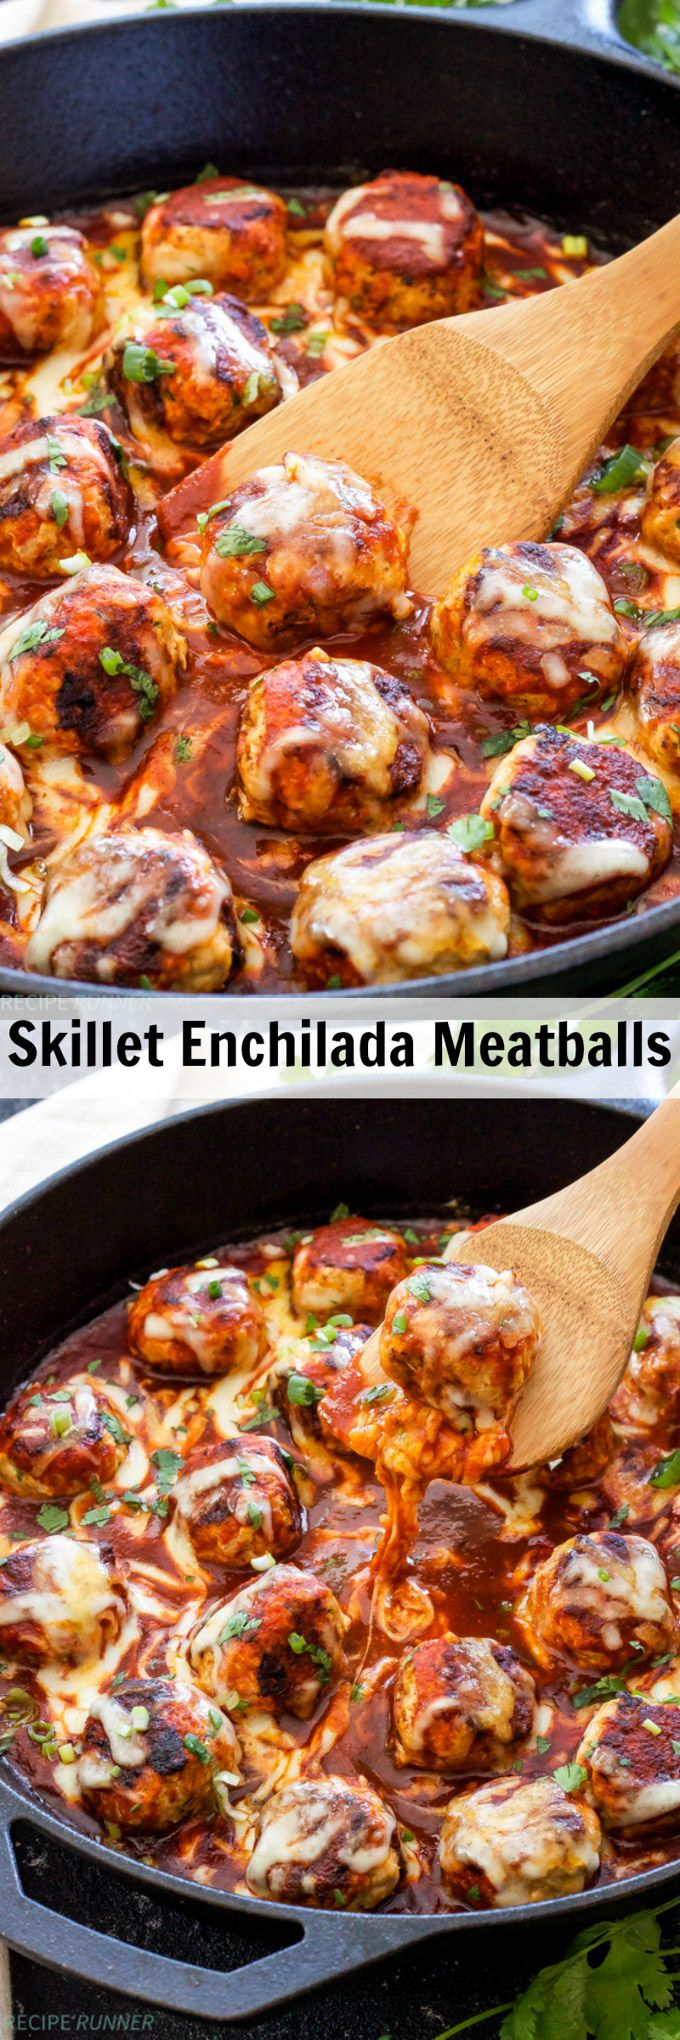 Skillet Enchilada Meatballs | Turkey meatballs seasoned with Mexican spices, browned in a skillet and topped with enchilada sauce and lots of cheese! The perfect solution when your craving hassle-free Mexican food!  http://homeexchange.xyz